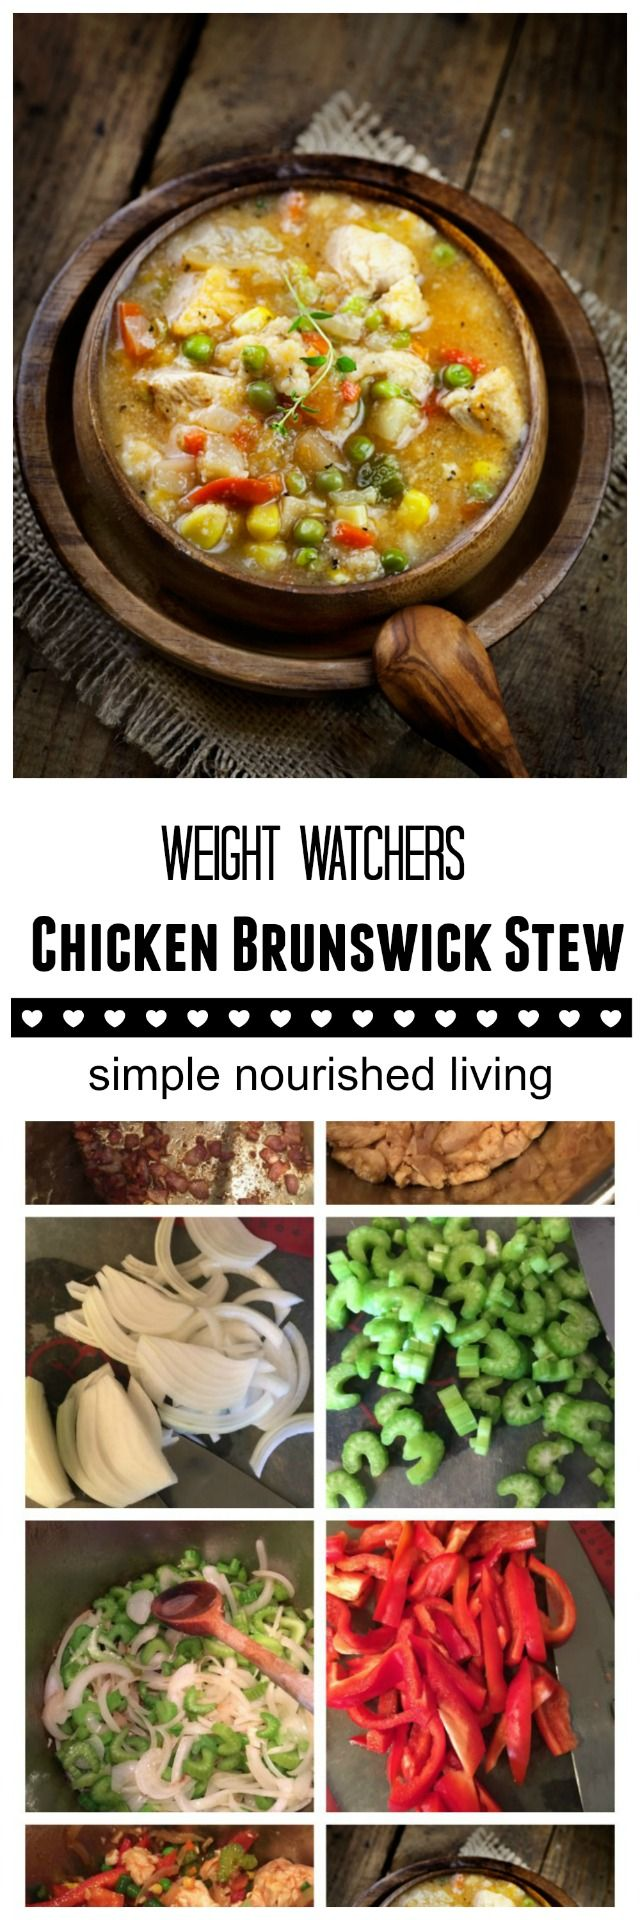 Weight Watchers Brunswick Chicken Stew. Simple + Hearty + Delicious. 6WWPP http://simple-nourished-living.com/2015/02/weight-watchers-chicken-brunswick-stew-recipe/